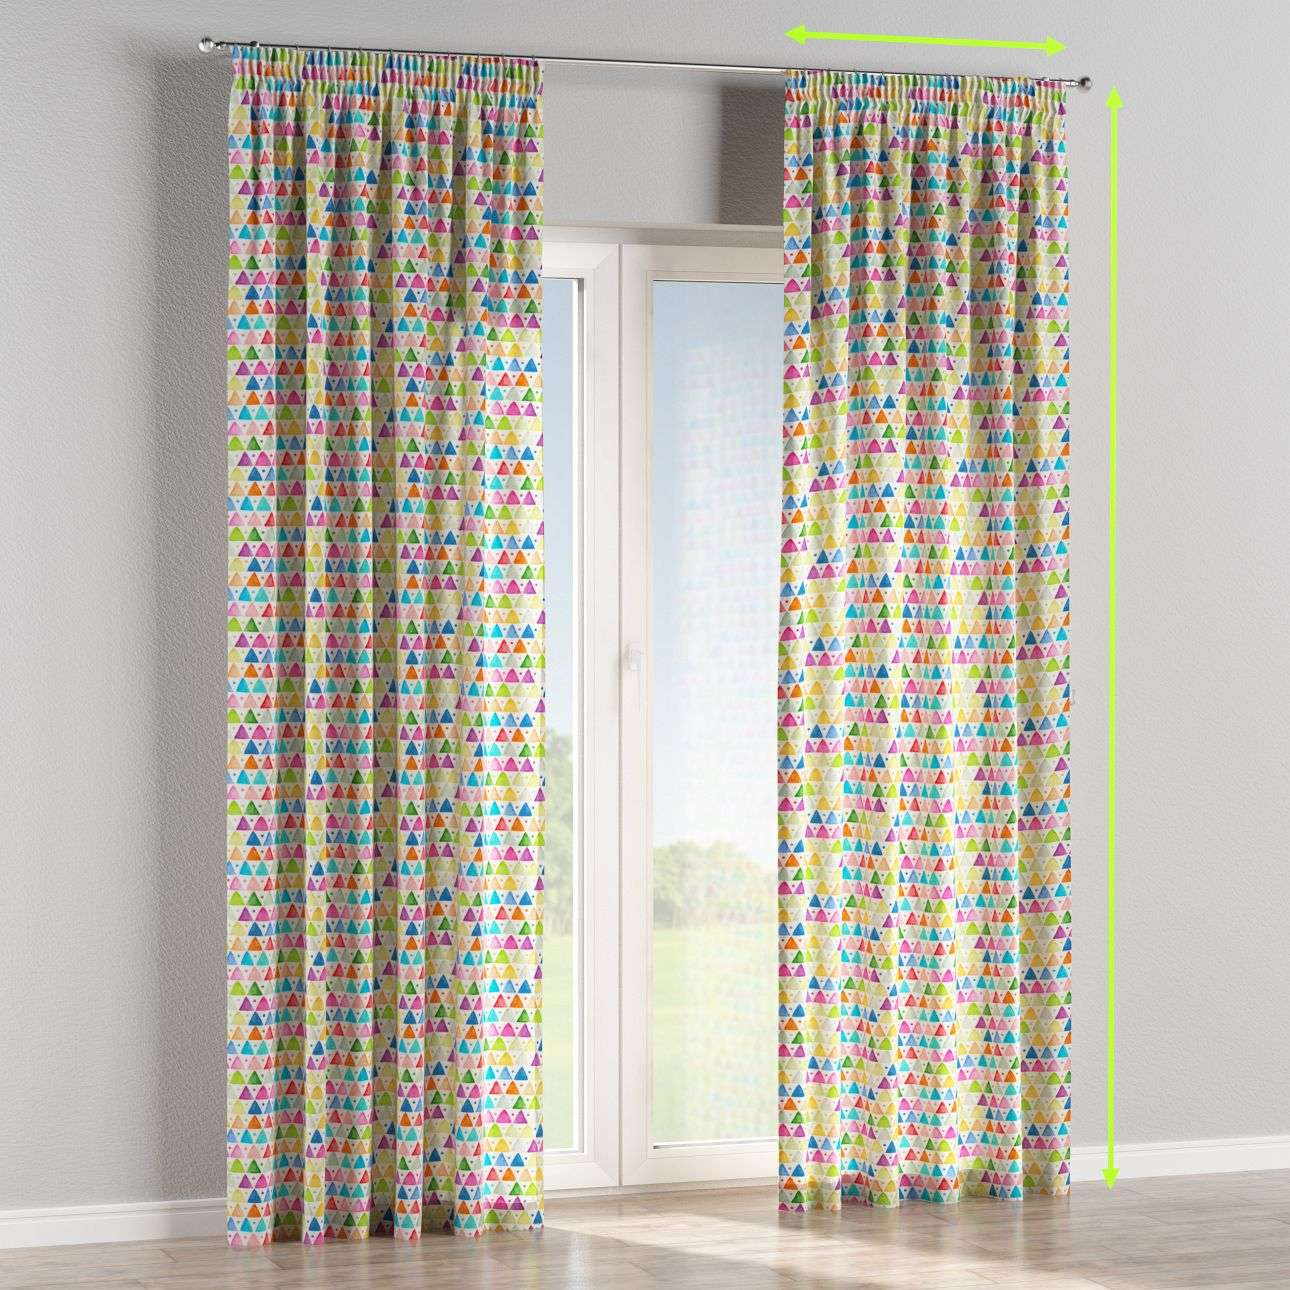 Pencil pleat lined curtains in collection New Art, fabric: 140-27